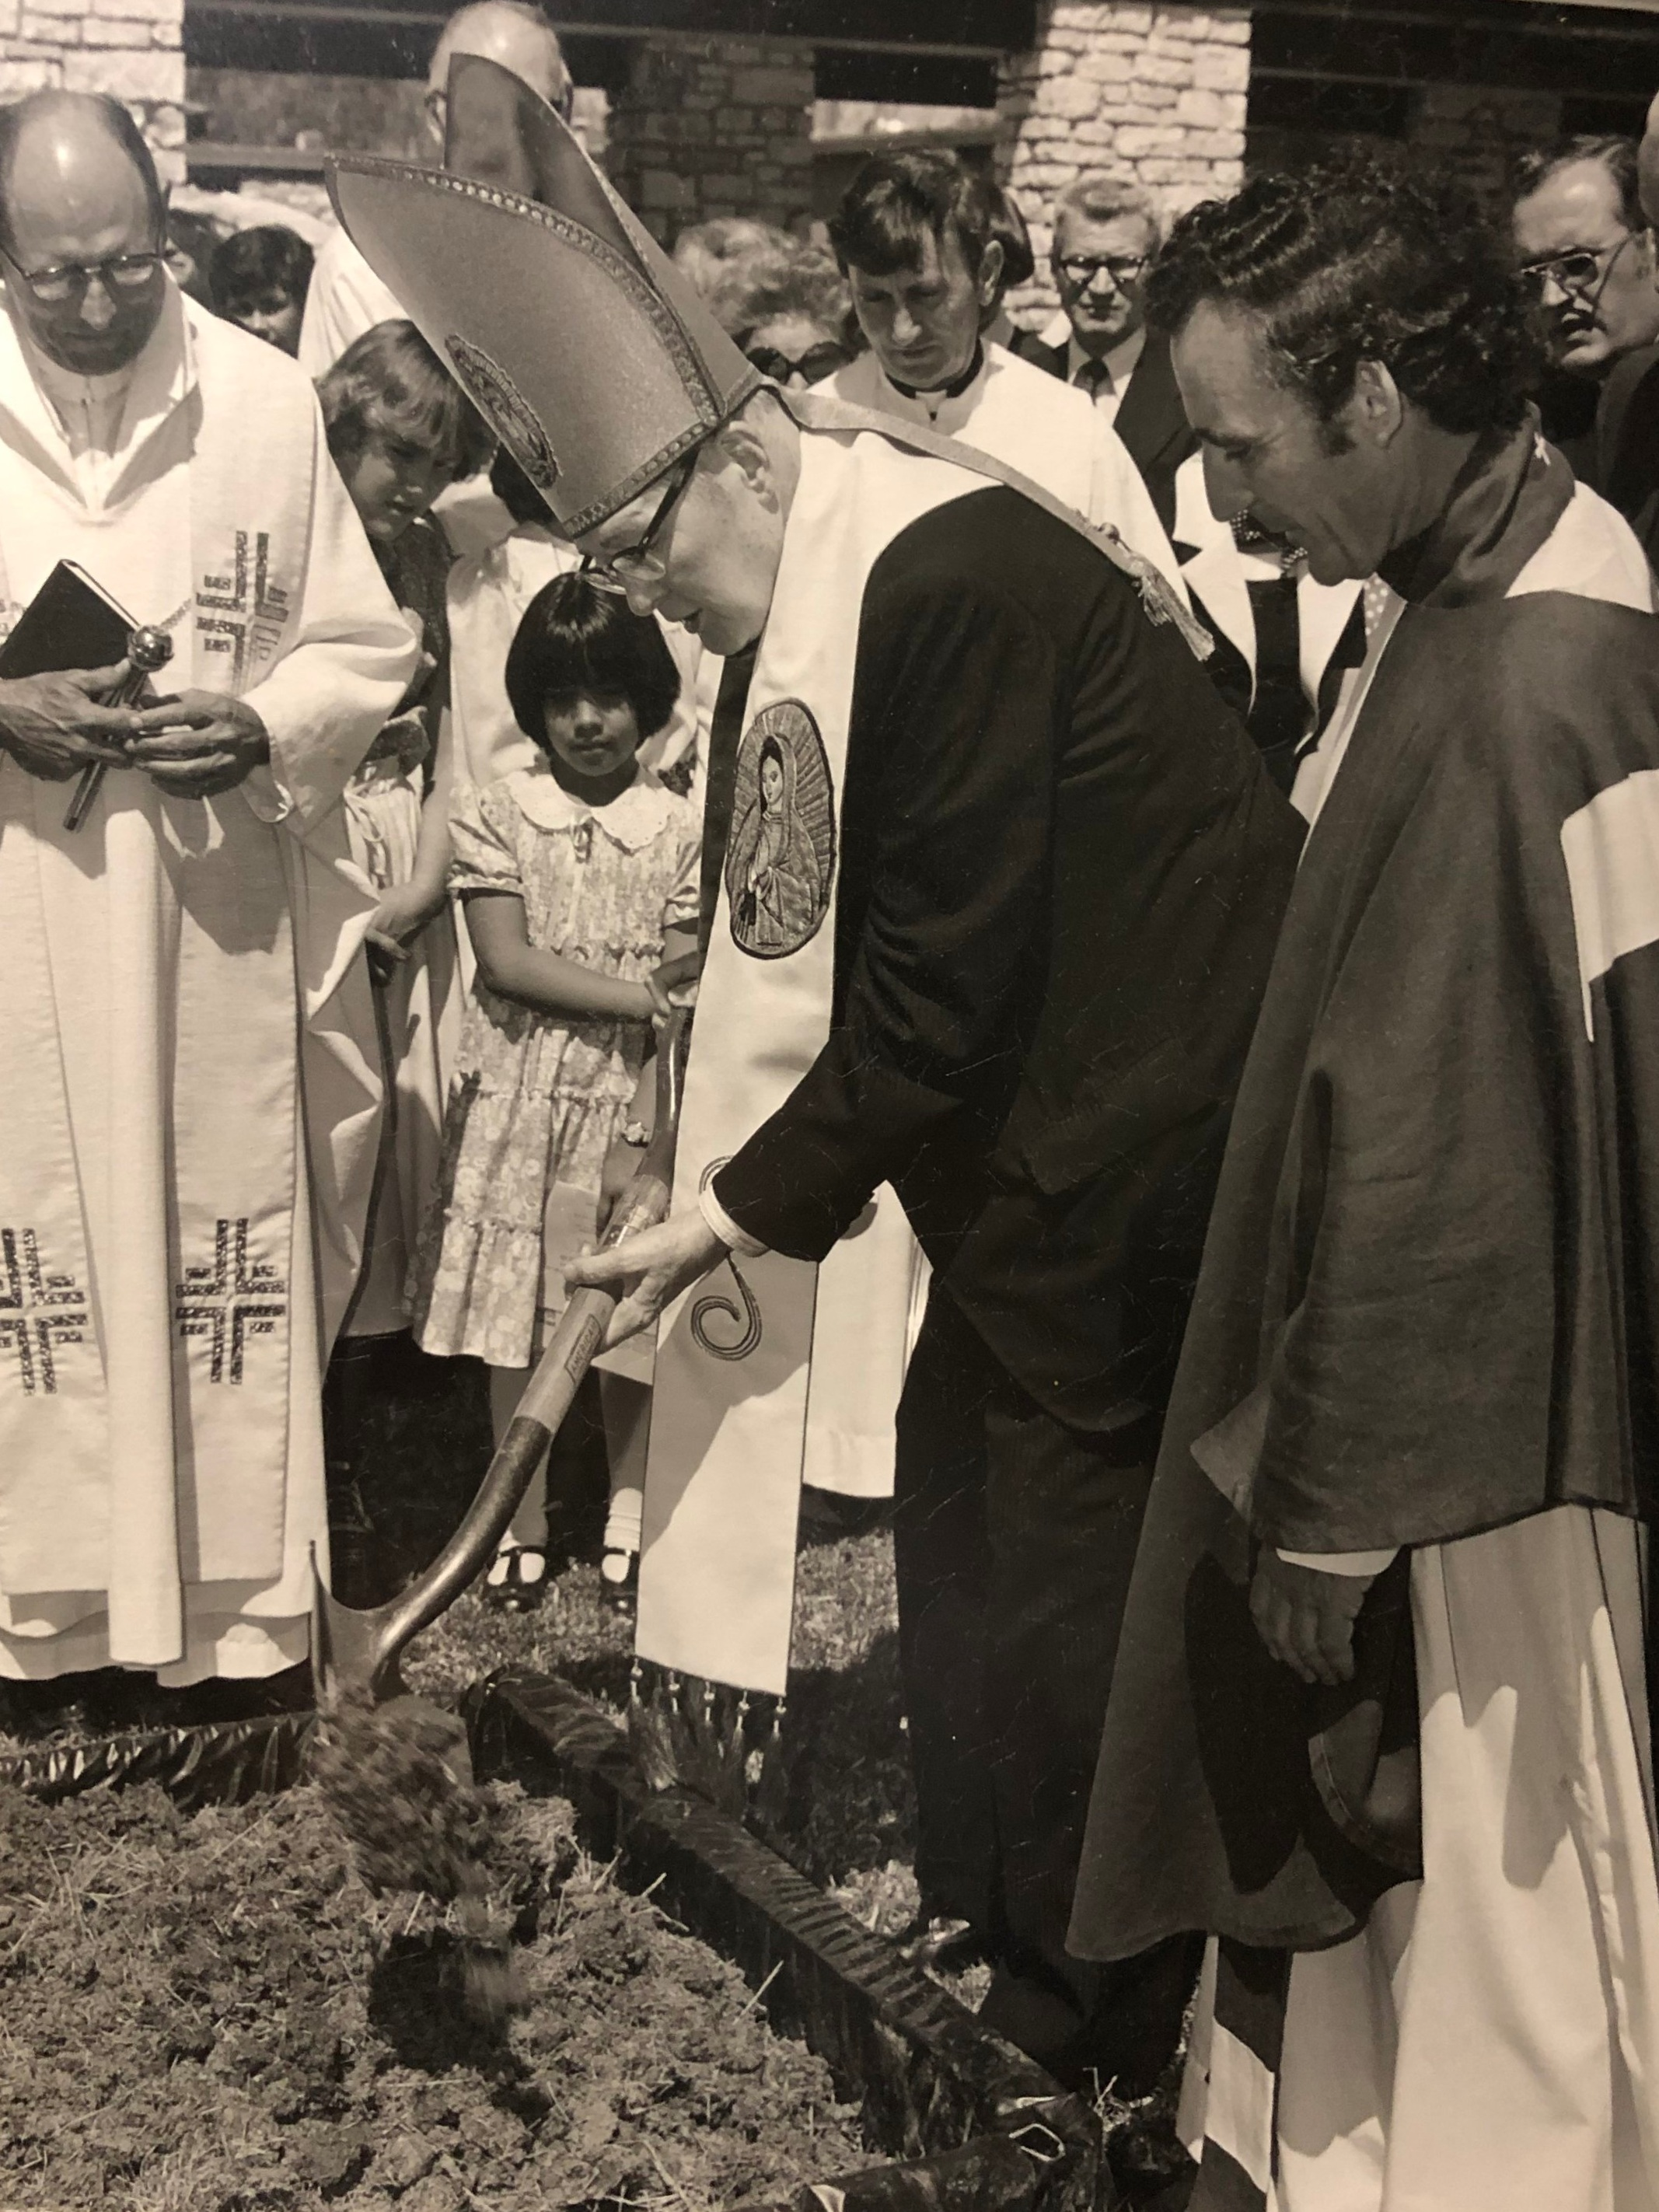 March 25, 1979 - Breaking Ground for SJN